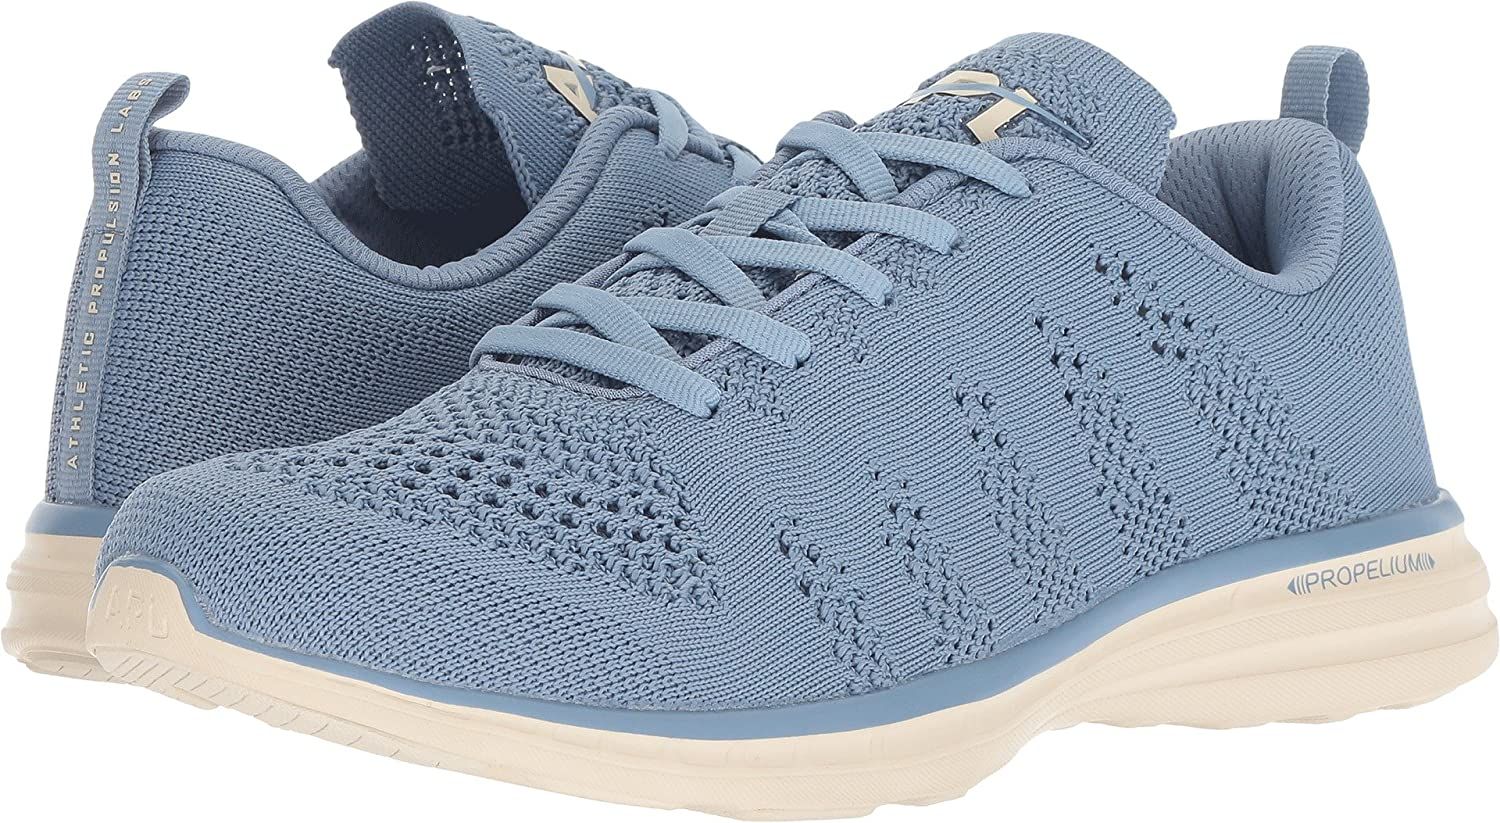 APL: Athletic Propulsion Labs Women's Techloom Pro Sneakers B07BH37XMR 5 M US|Grey Denim/Parchment